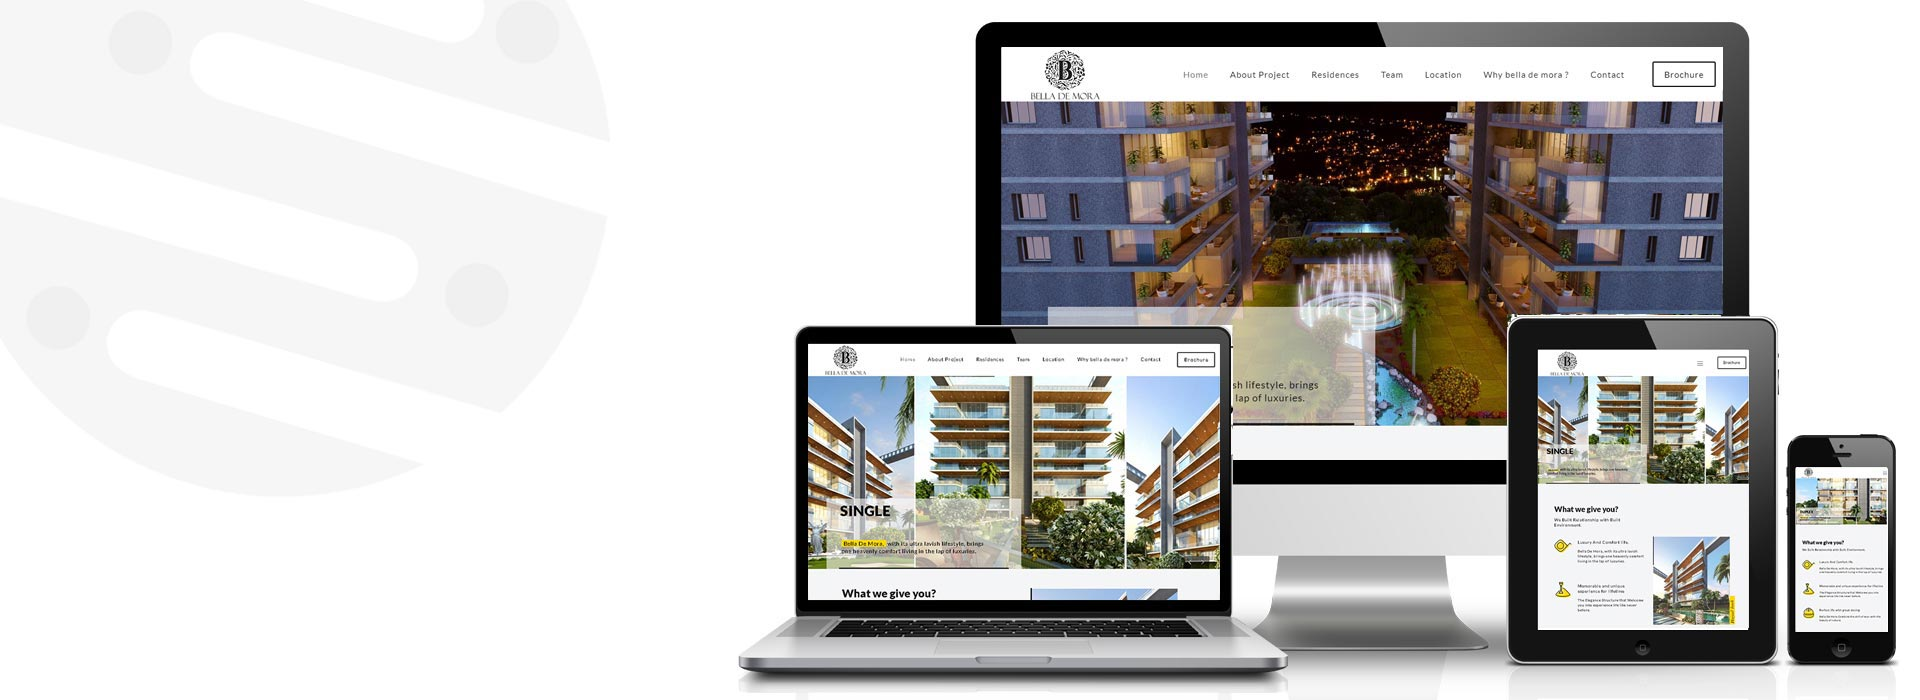 We create beautiful and functional WEBSITES